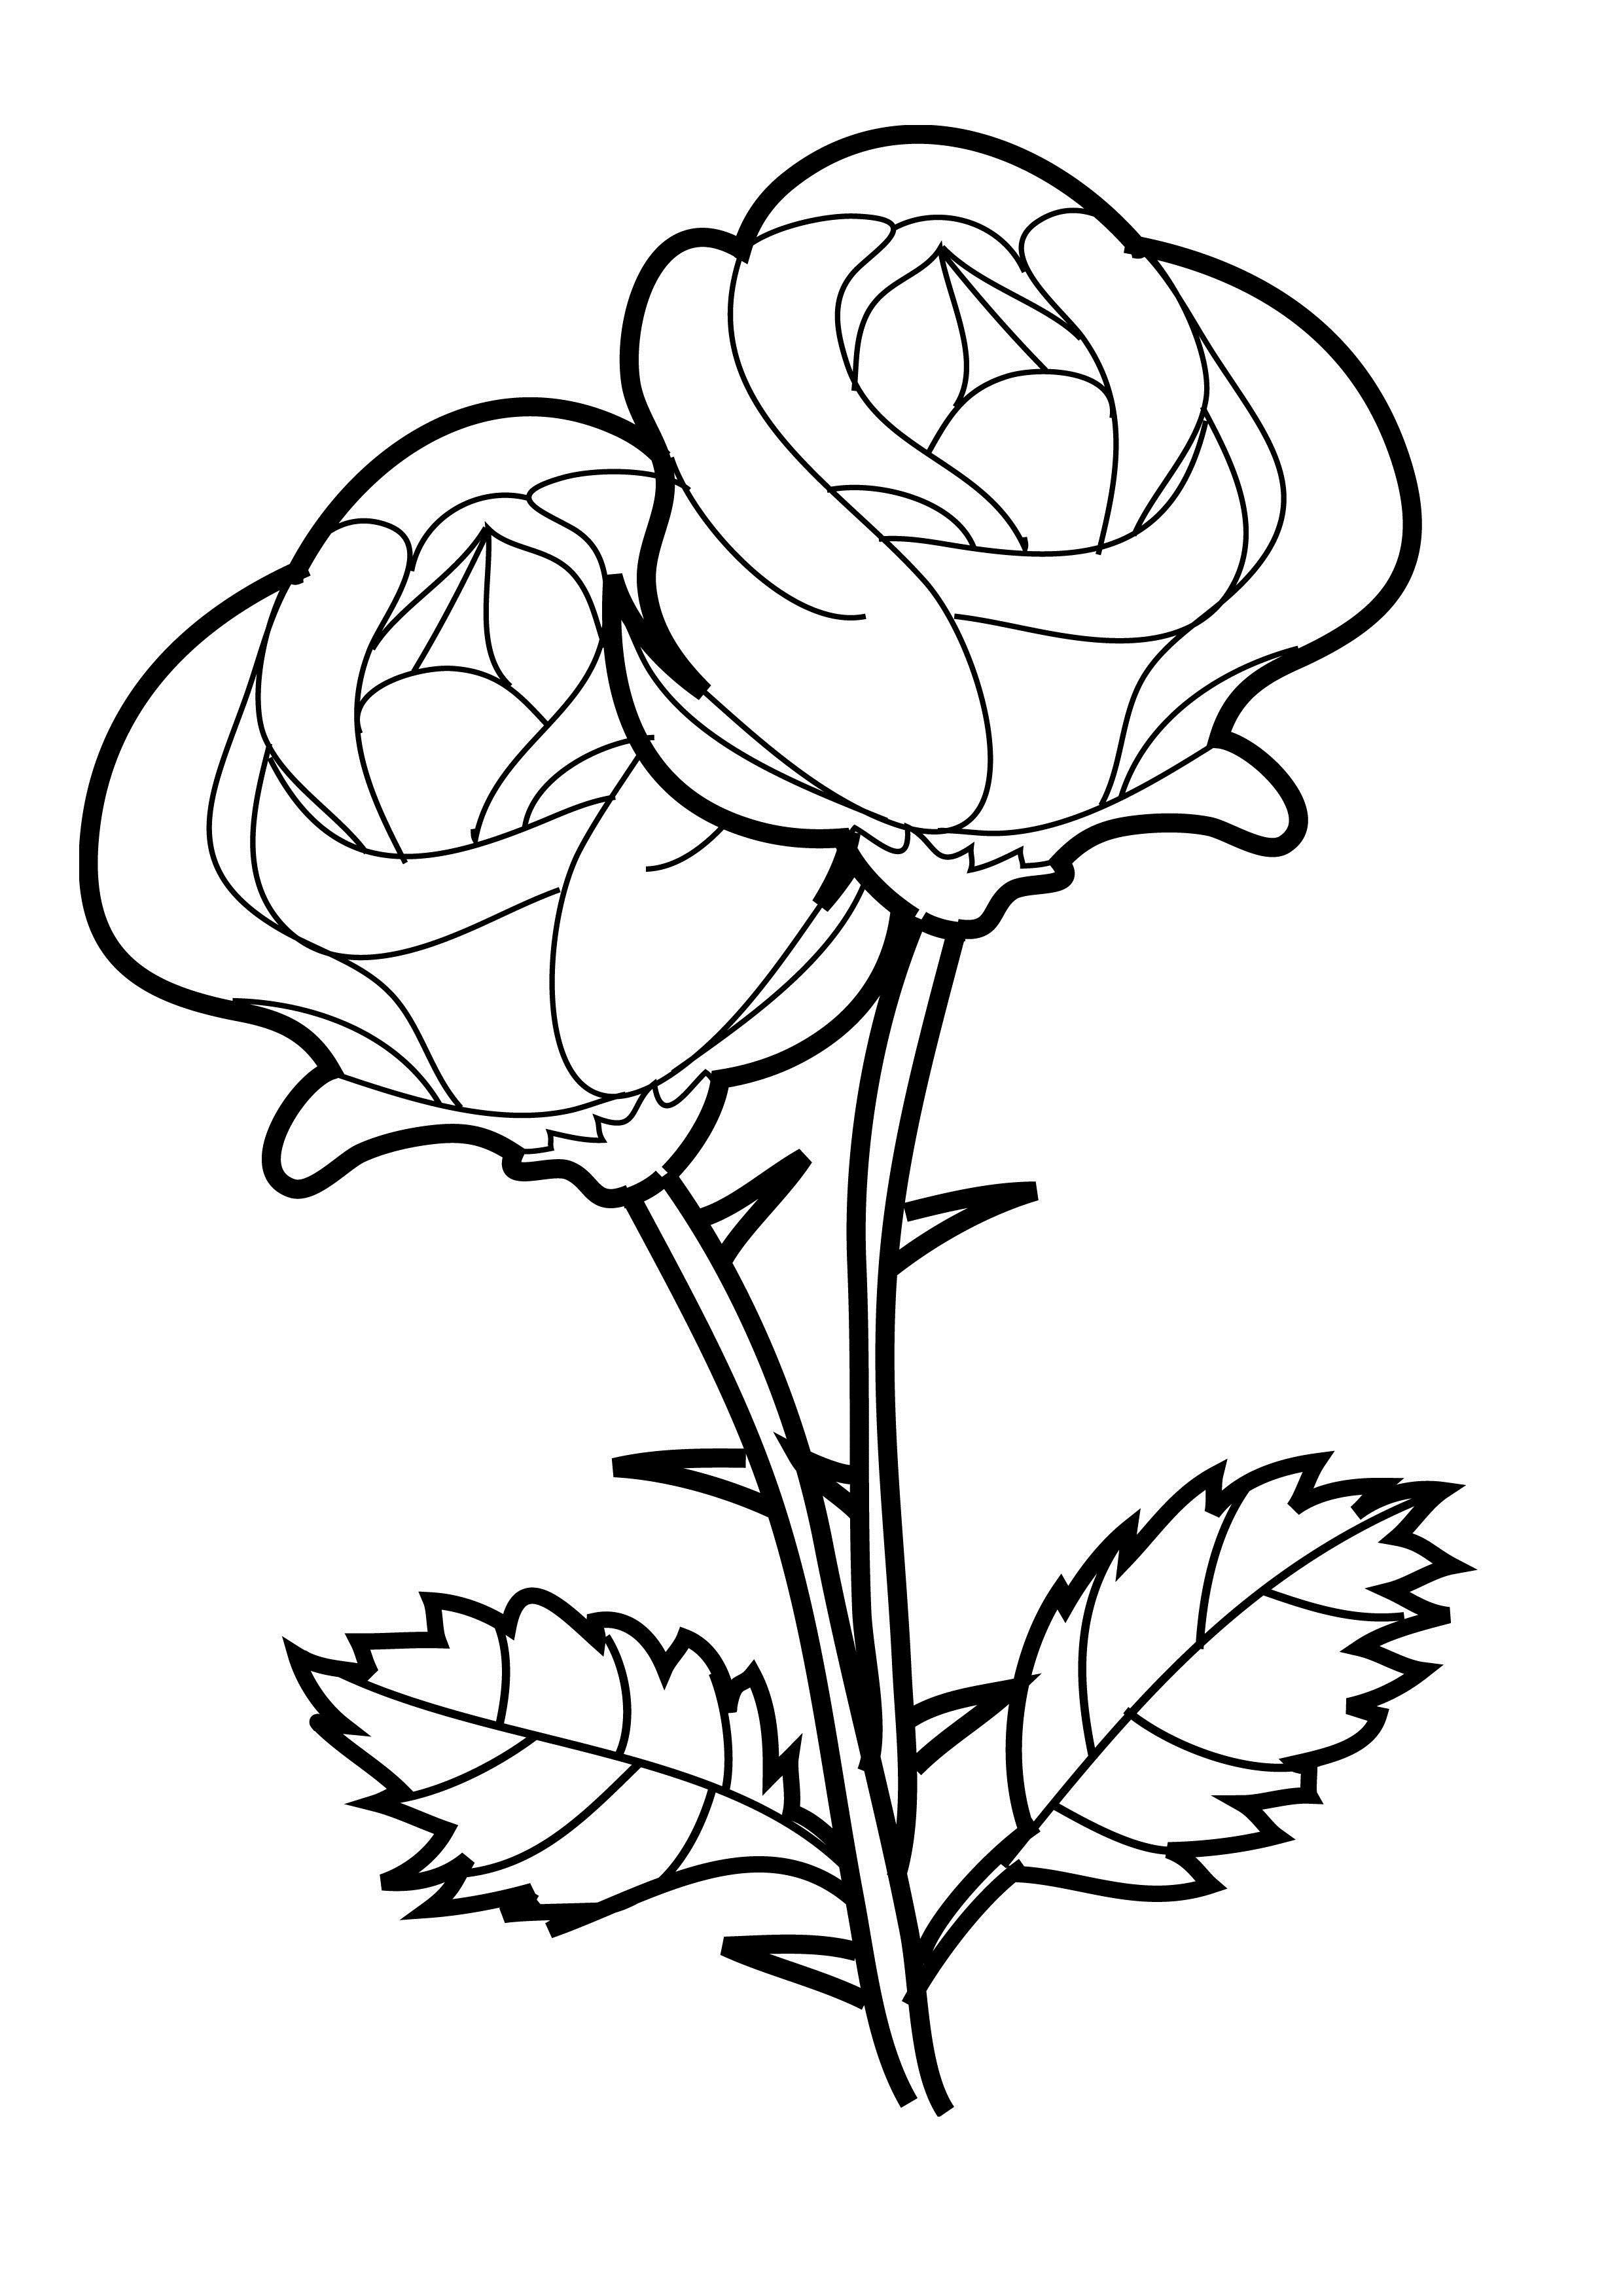 Flower Coloring Pages  Rose coloring pages, Printable flower